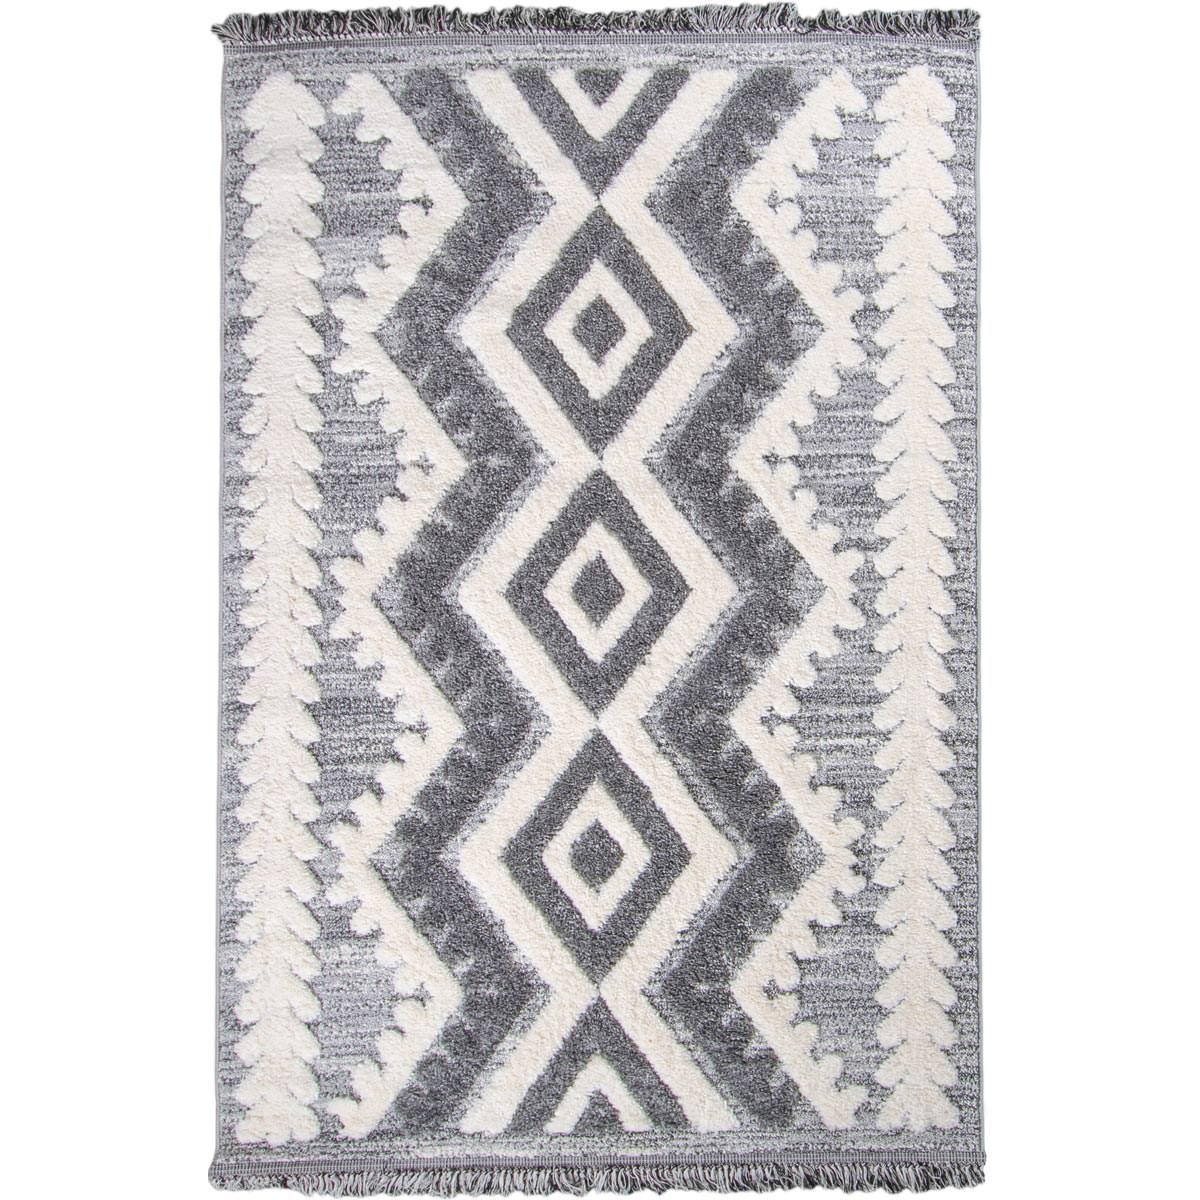 Atlas Rug 08 Grey - Fringes 1